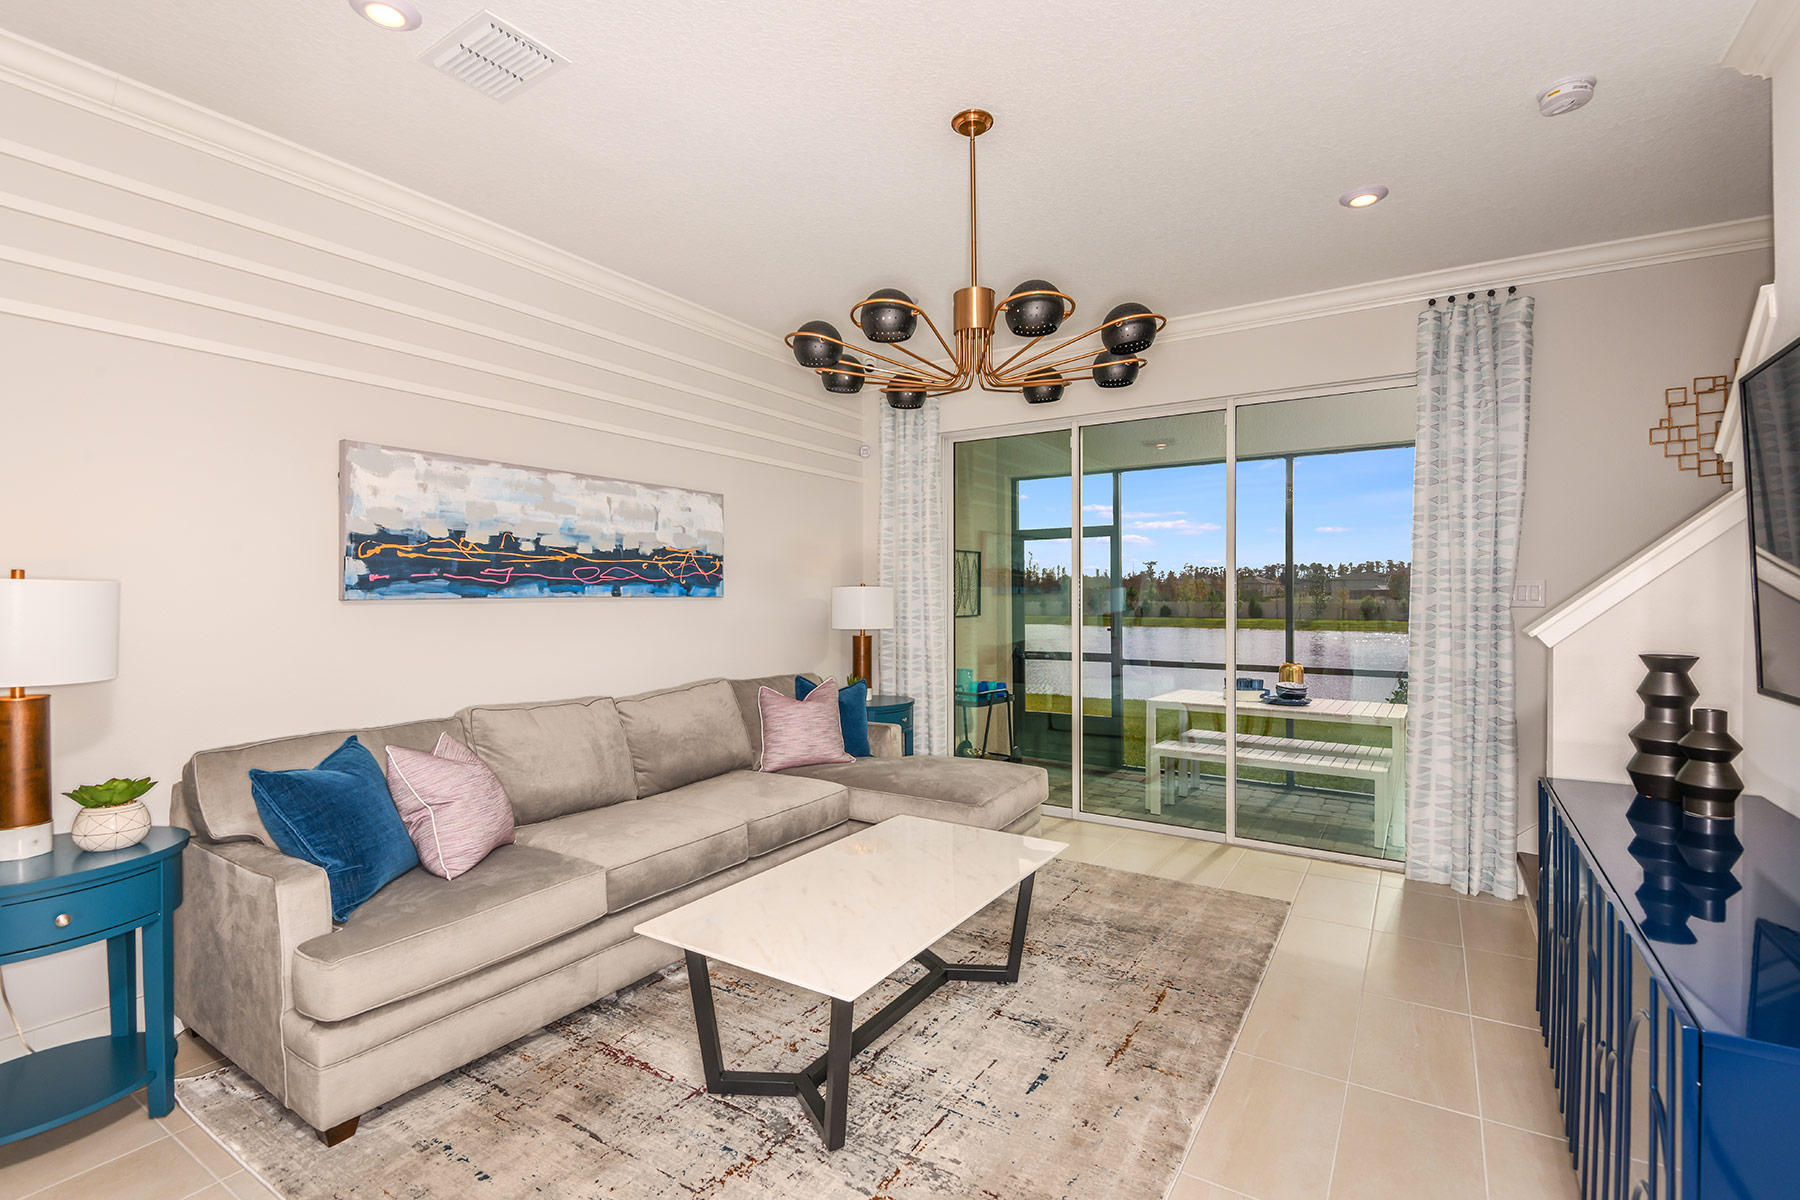 Marianna Plan Greatroom at Parkview at Long Lake Ranch in Lutz Florida by Mattamy Homes